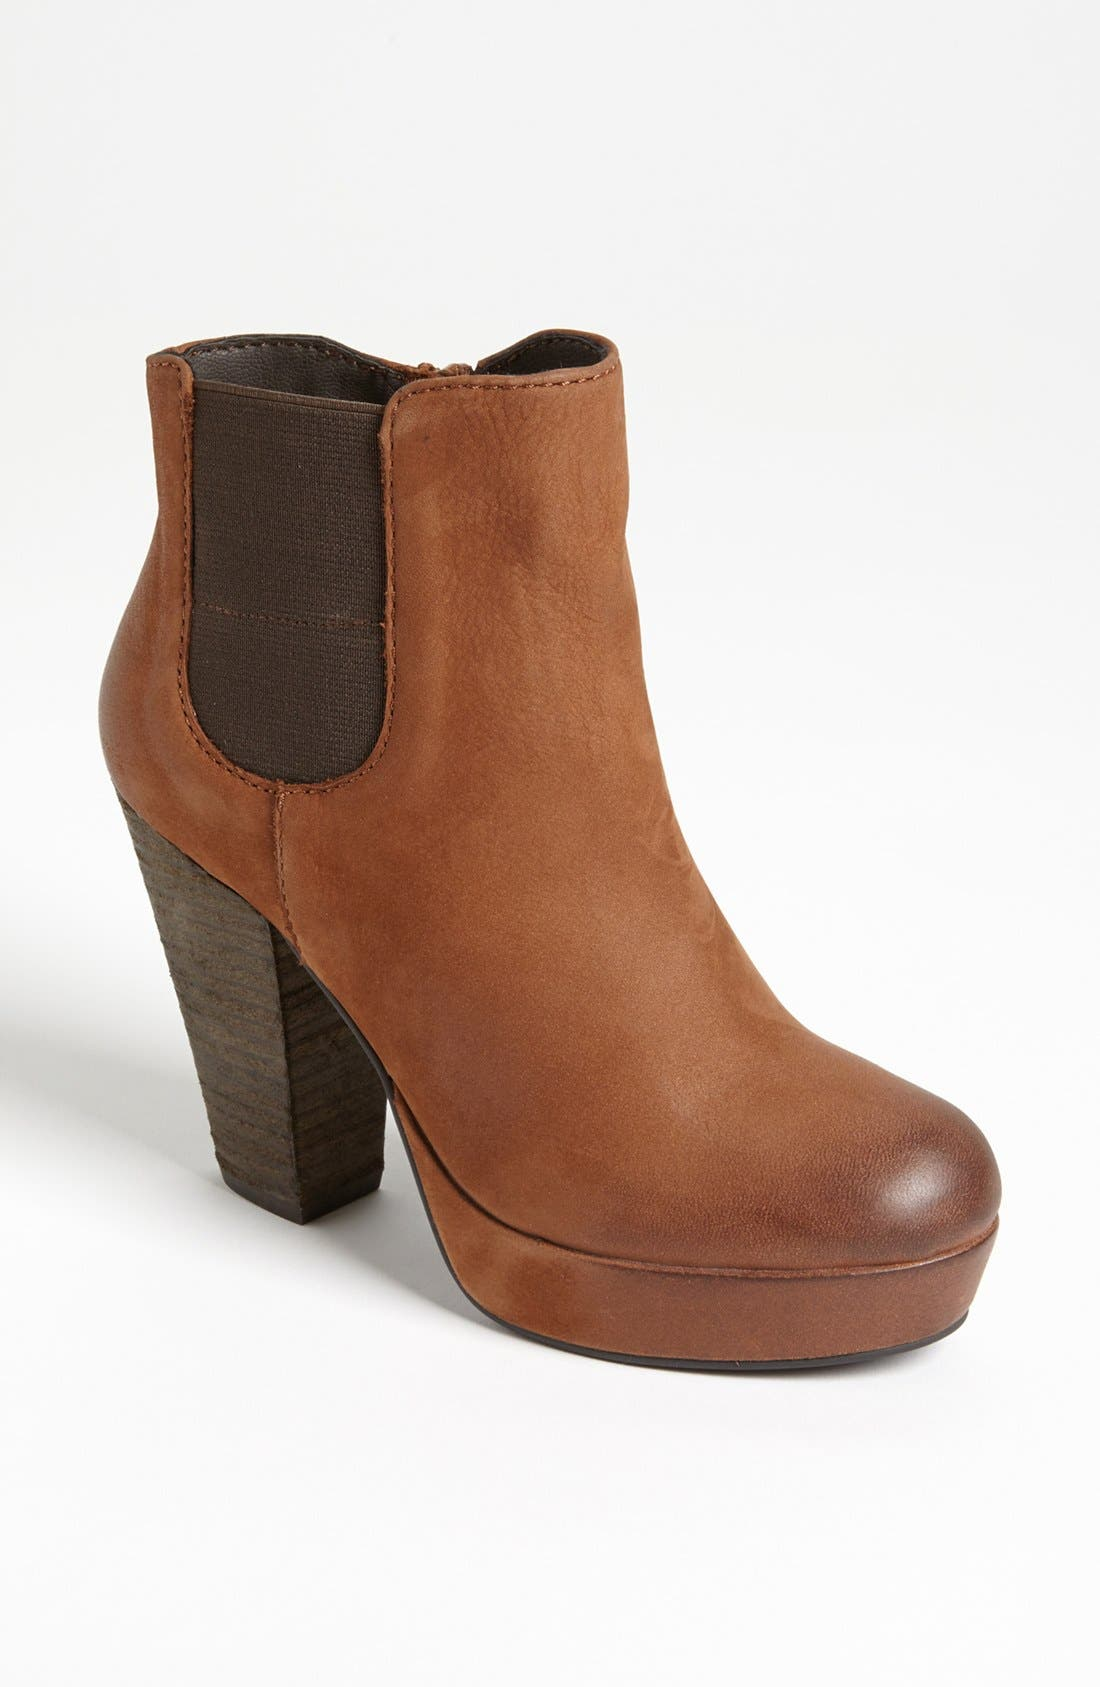 Alternate Image 1 Selected - Steve Madden 'Ryddlle' Bootie